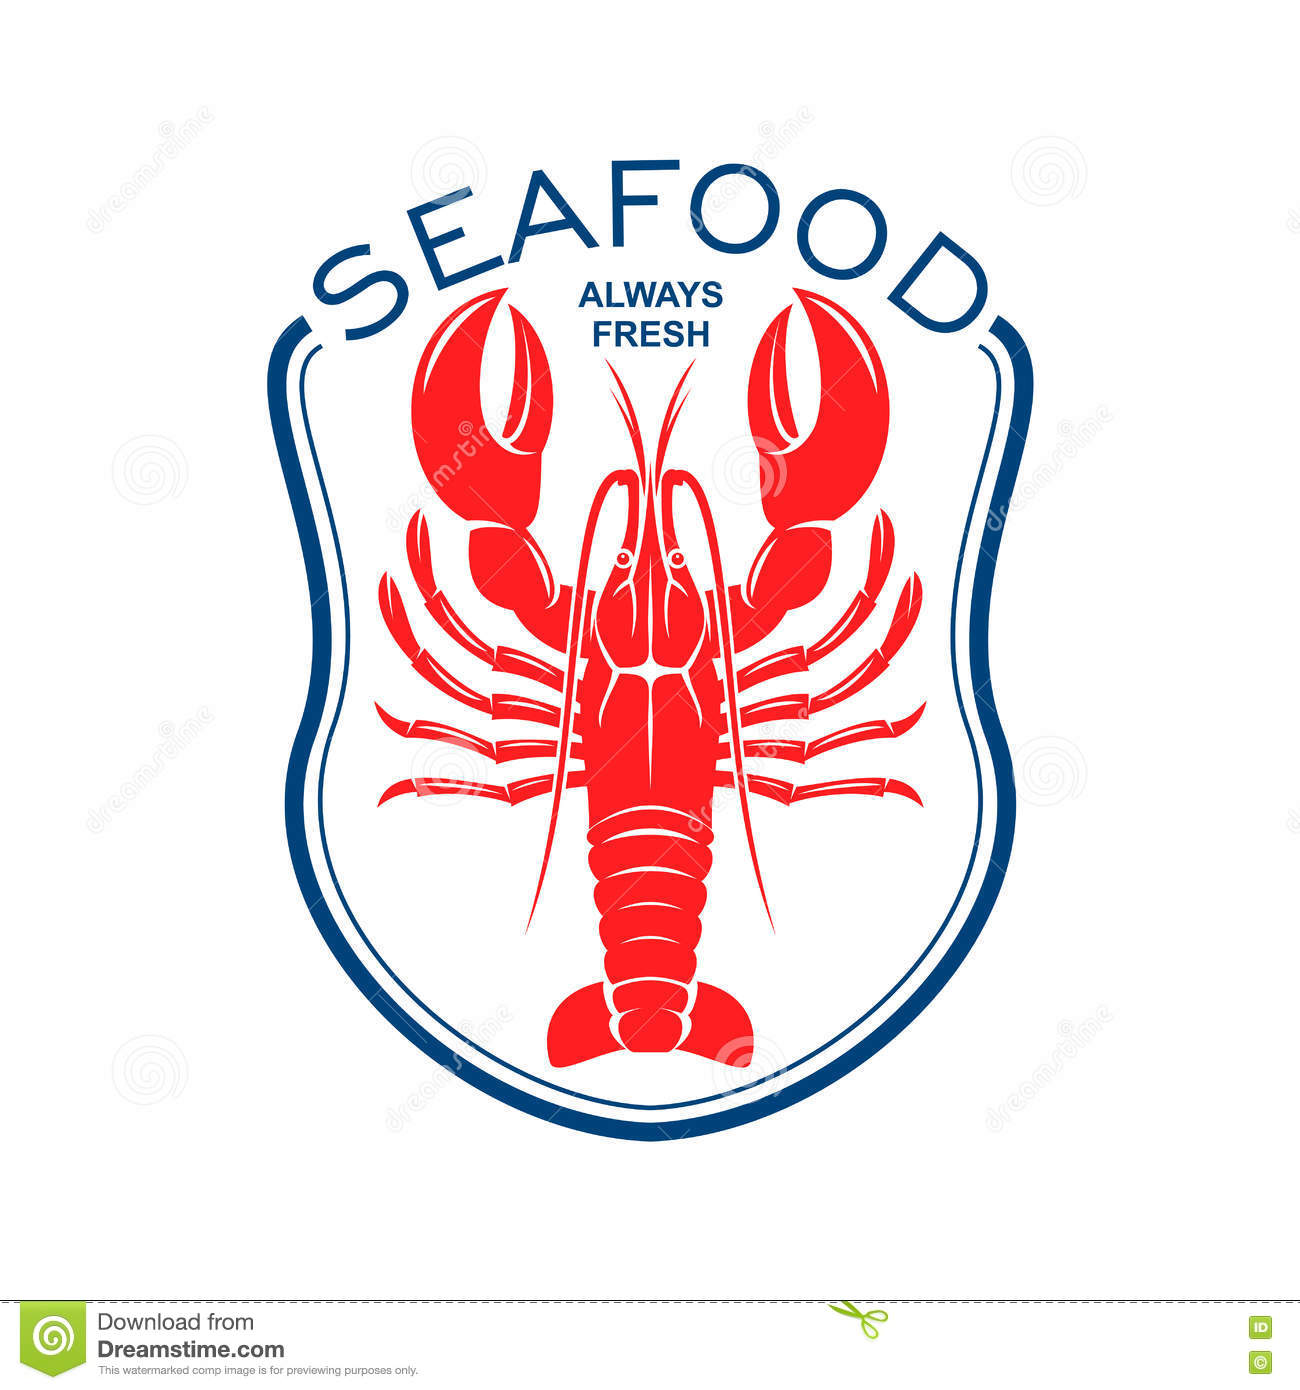 Red Lobster Icon For Seafood Restaurant Design Stock Vector - Image: 73195180